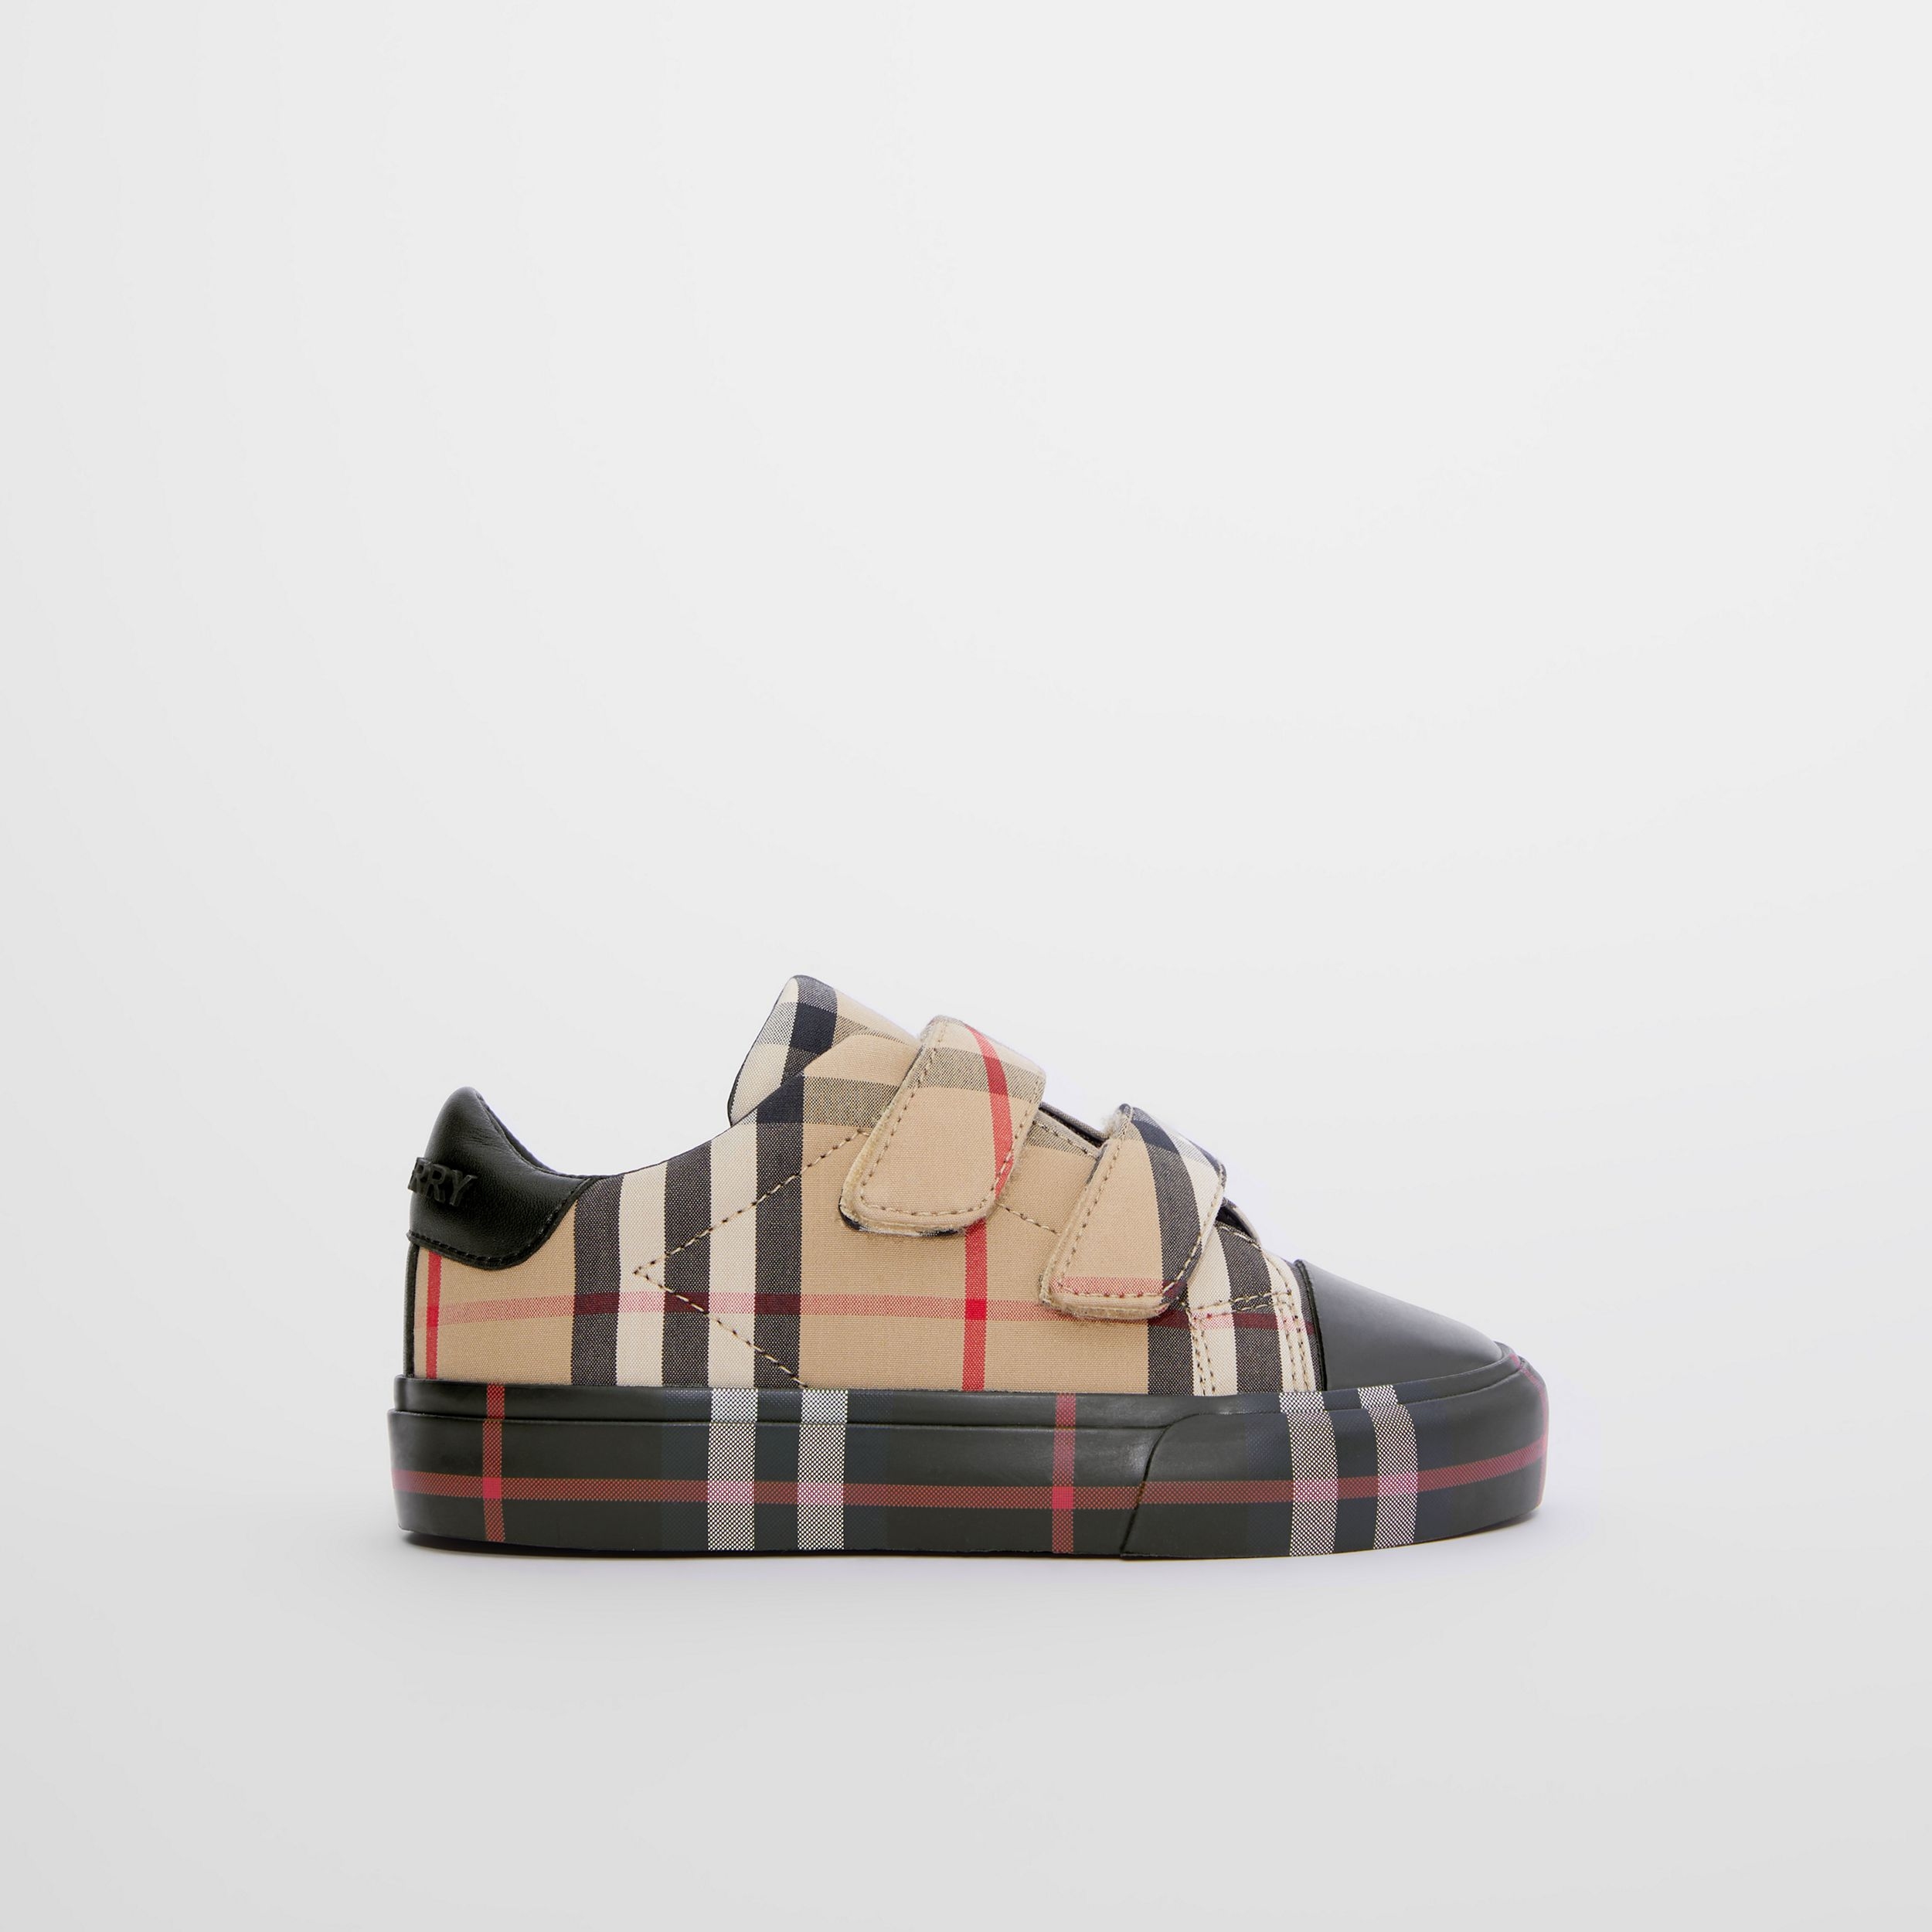 Contrast Check Cotton Sneakers in Archive Beige/black - Children | Burberry - 4